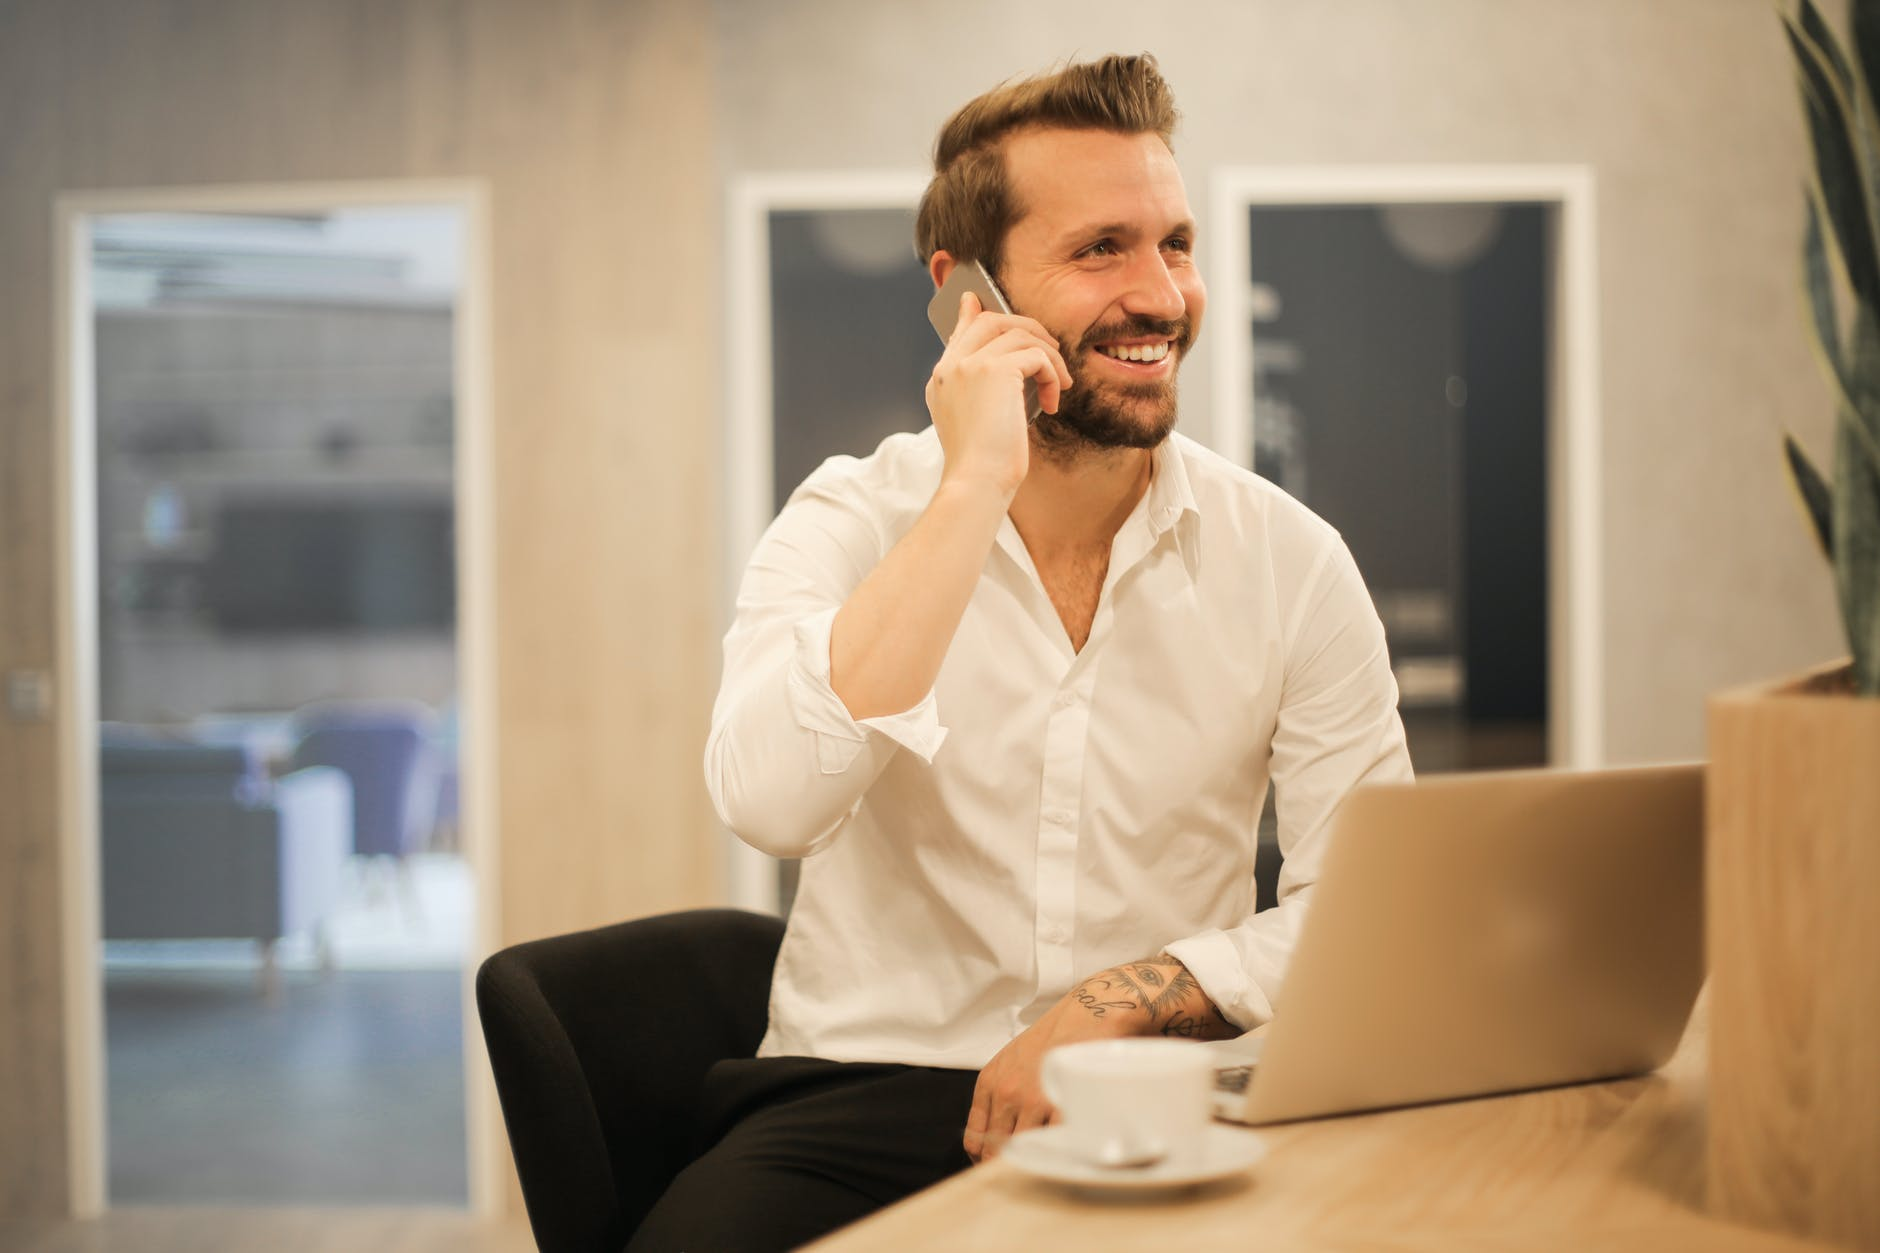 smiling formal male with laptop chatting via phone